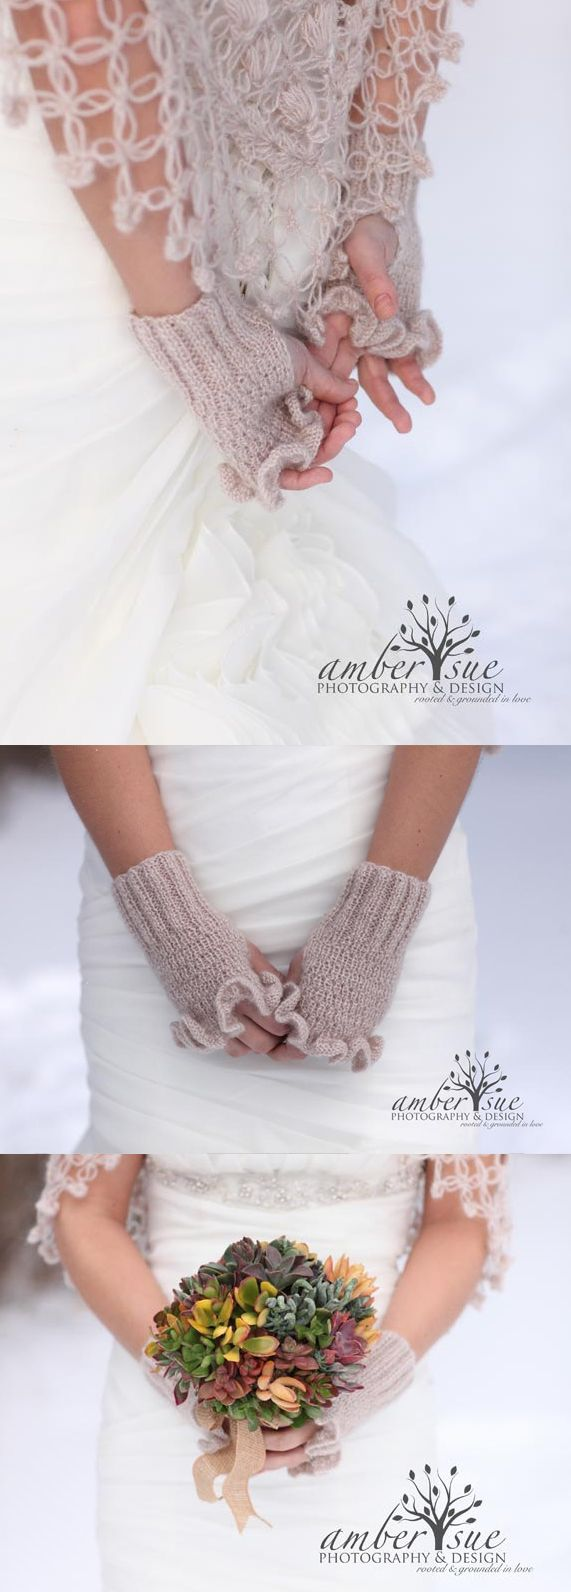 Bridal Fingerless mitten gloves with mohair. Super warm and pretty gloves for a winter wedding. Wrist warmer style wedding gloves. Perfect for bride, and as bridesmaids gifts that they can wear all winter long. Christmas wedding outfits. Available in lot colours. #gloves #bridalgloves #wintergloves #bridesmaidsgifts #bride #bridesmaids #winterwedding #affiliate #etsyfinds #giftsforher #christmaswedding